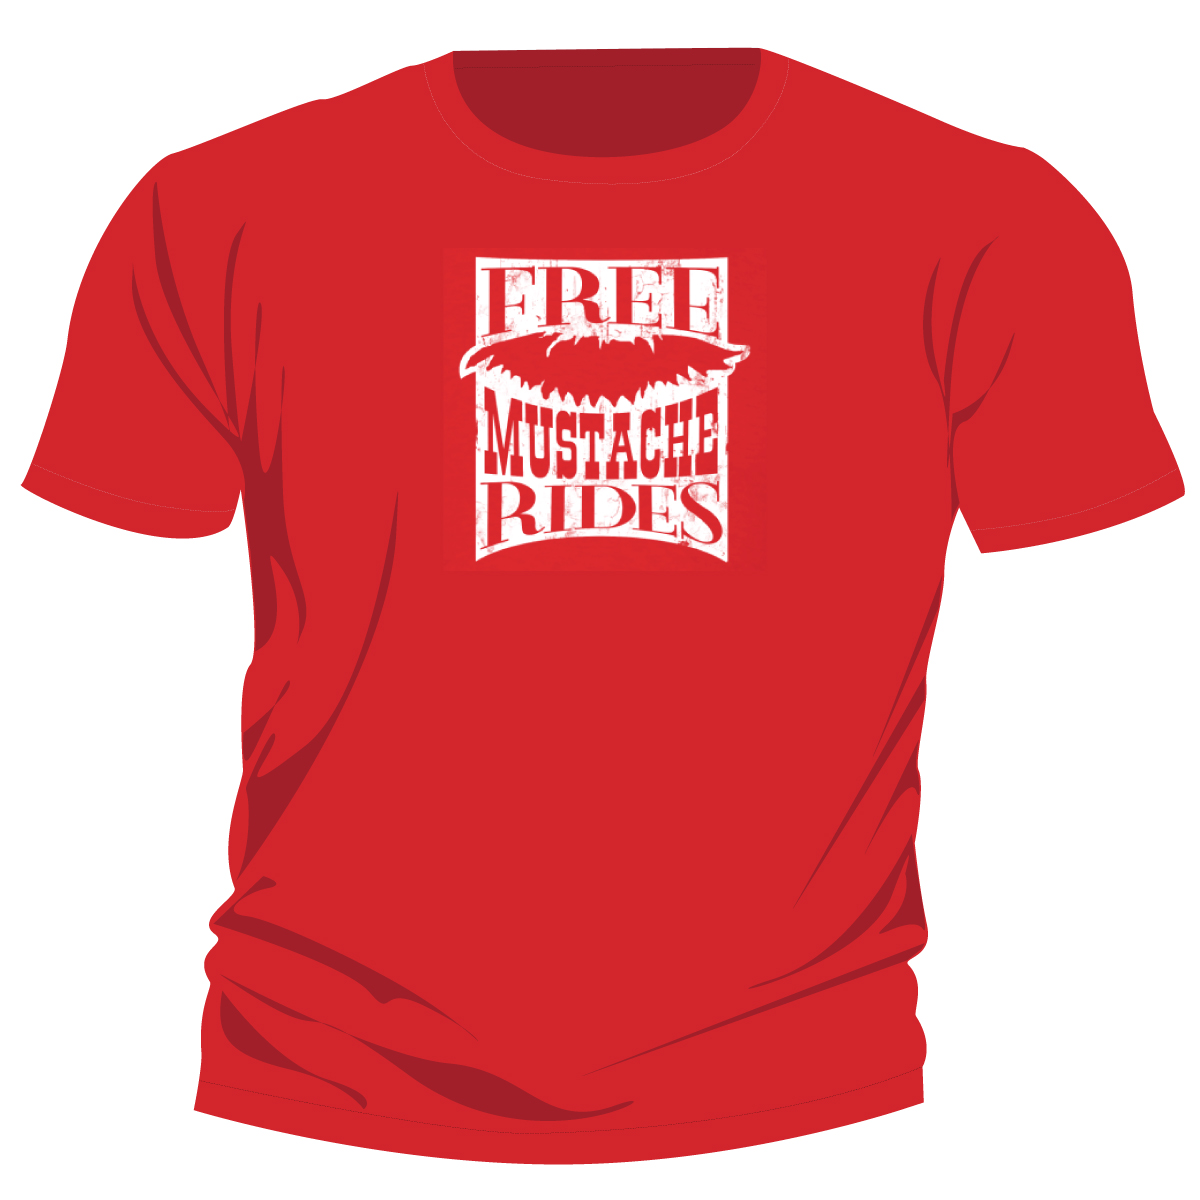 2010 Shirt Design: Red Free Mustache Rides